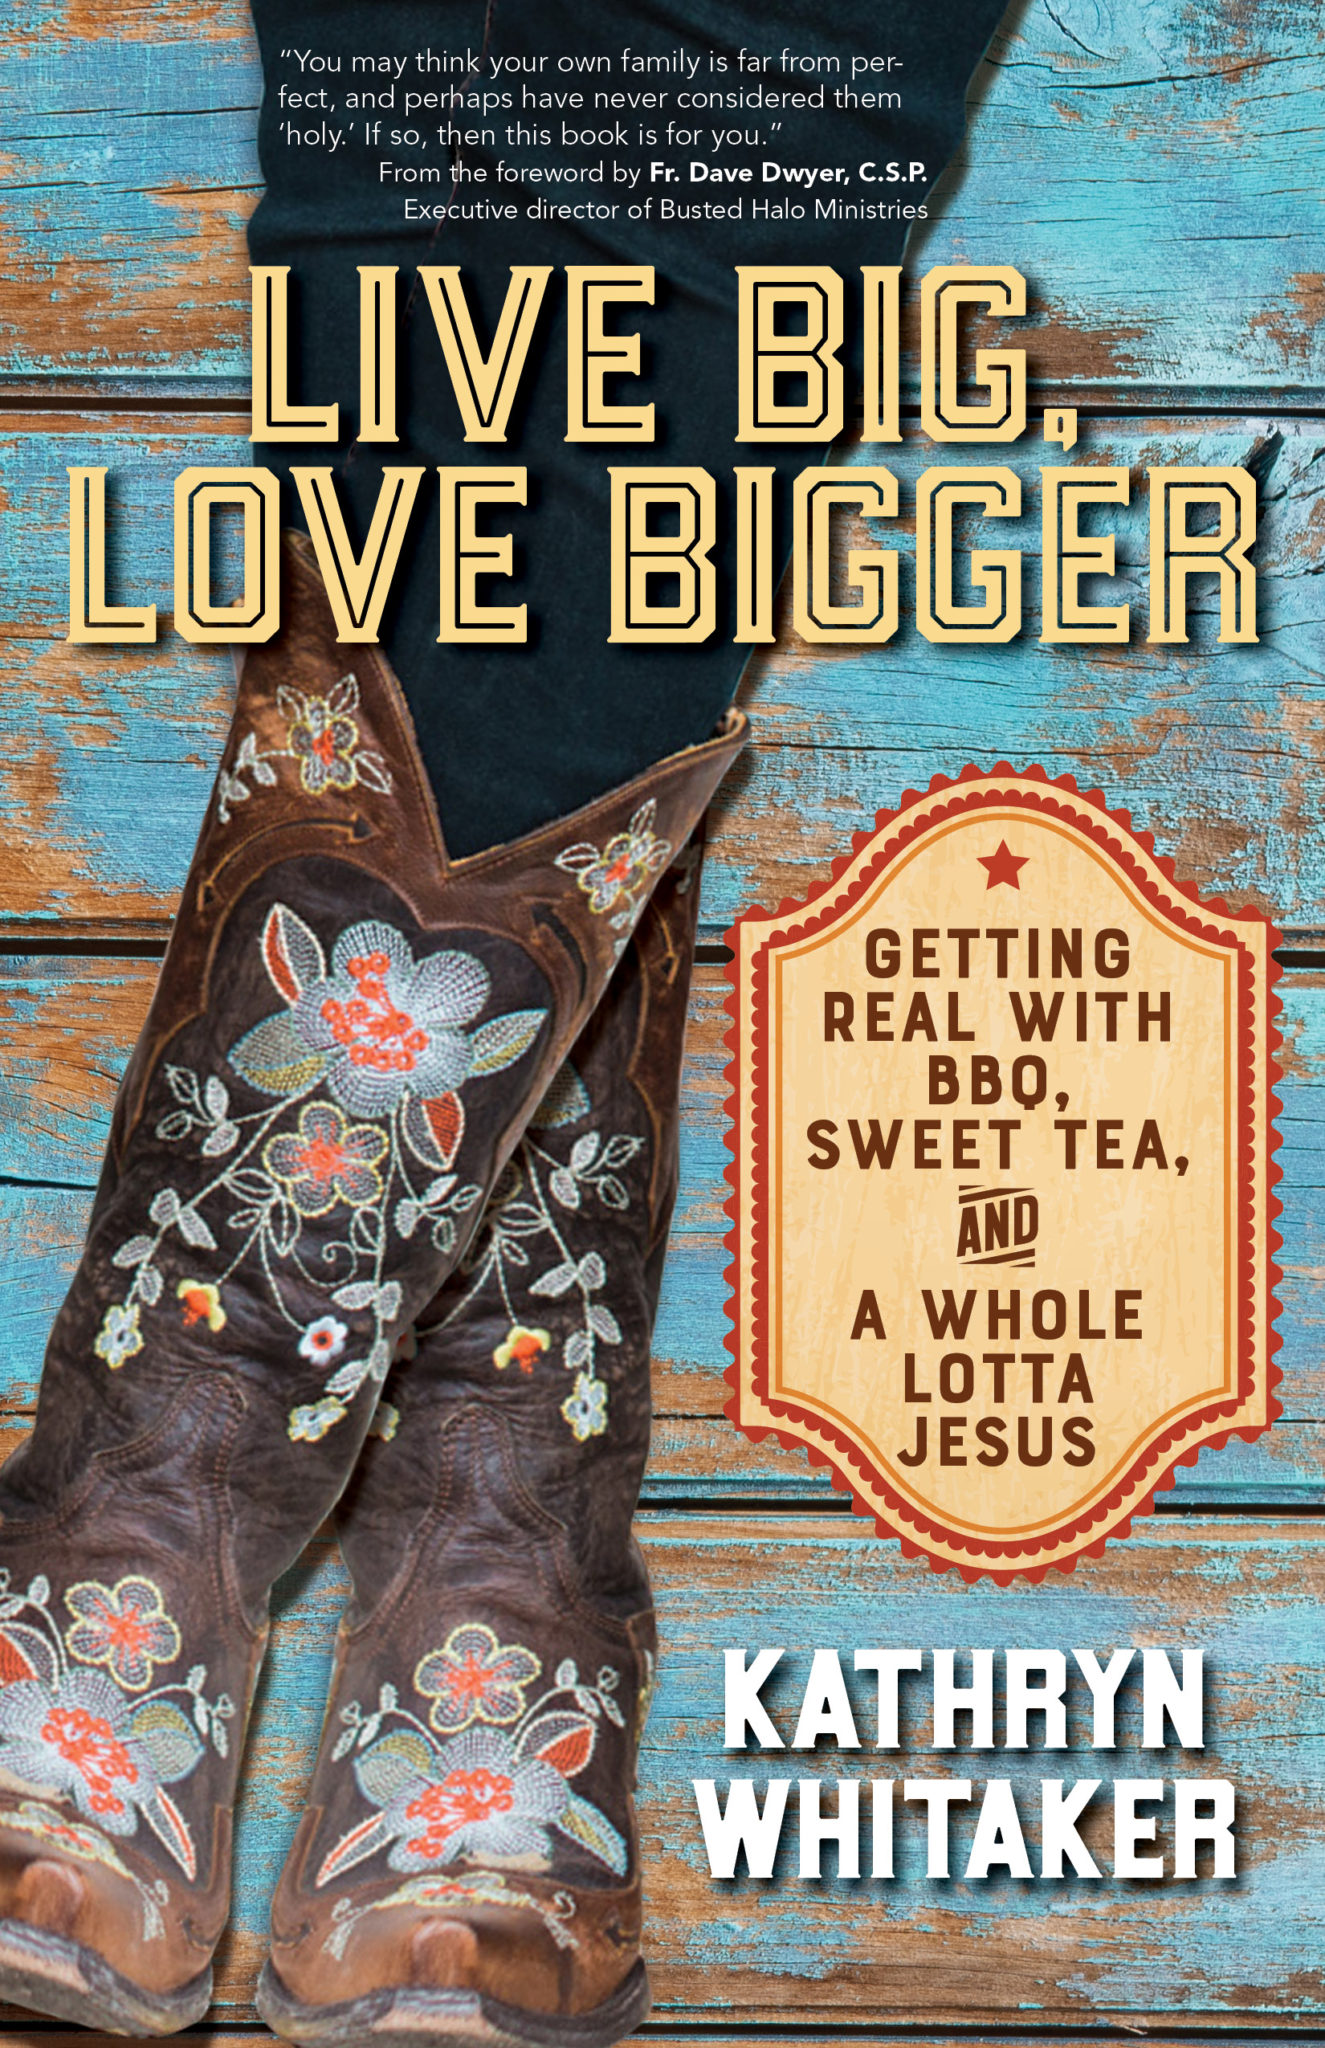 Kathryn Whitaker Book Author Blogger | Live Big Love Bigger